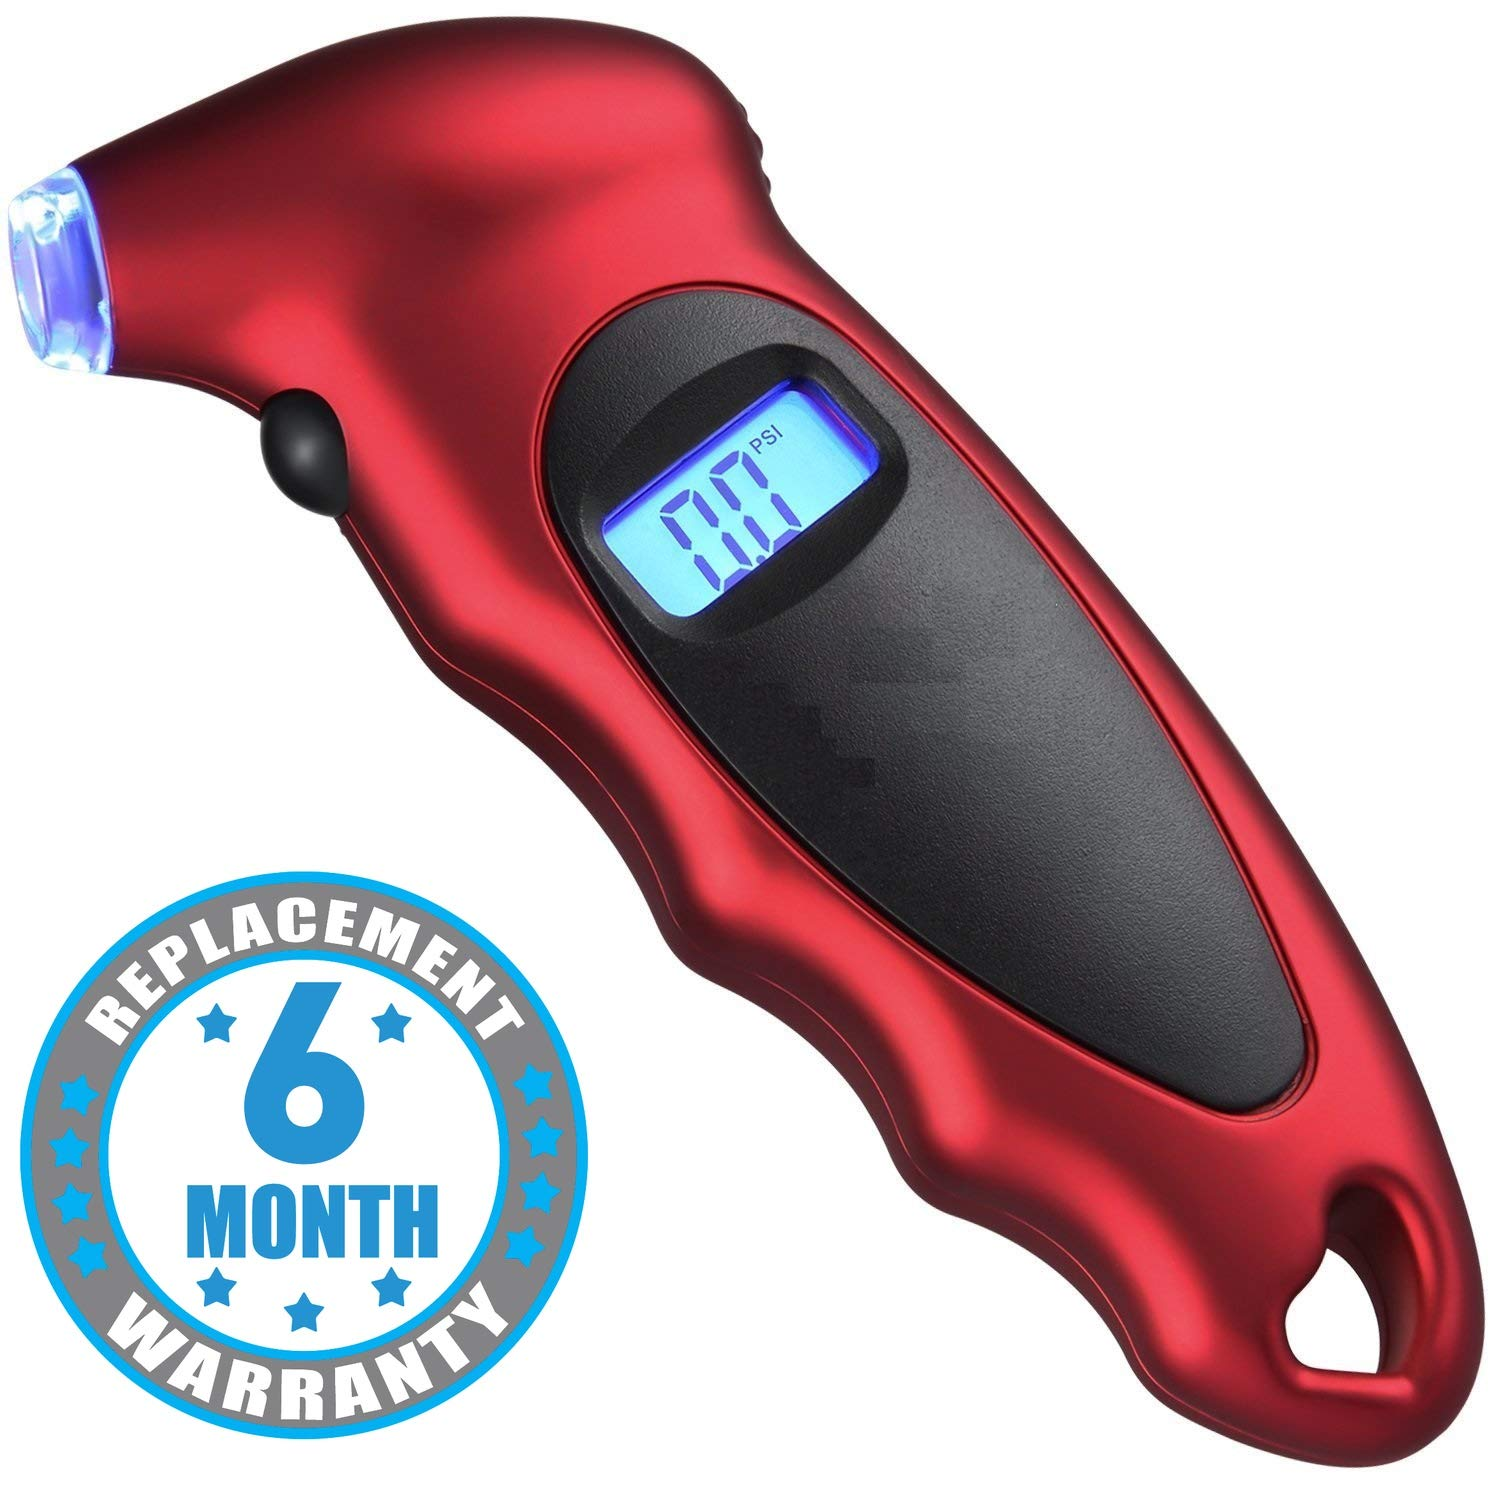 Voroly Digital Tyre Pressure Gauge 150 PSI 4 Settings for Car Truck Bicycle with Backlit LCD and Non-Slip Grip, Red product image